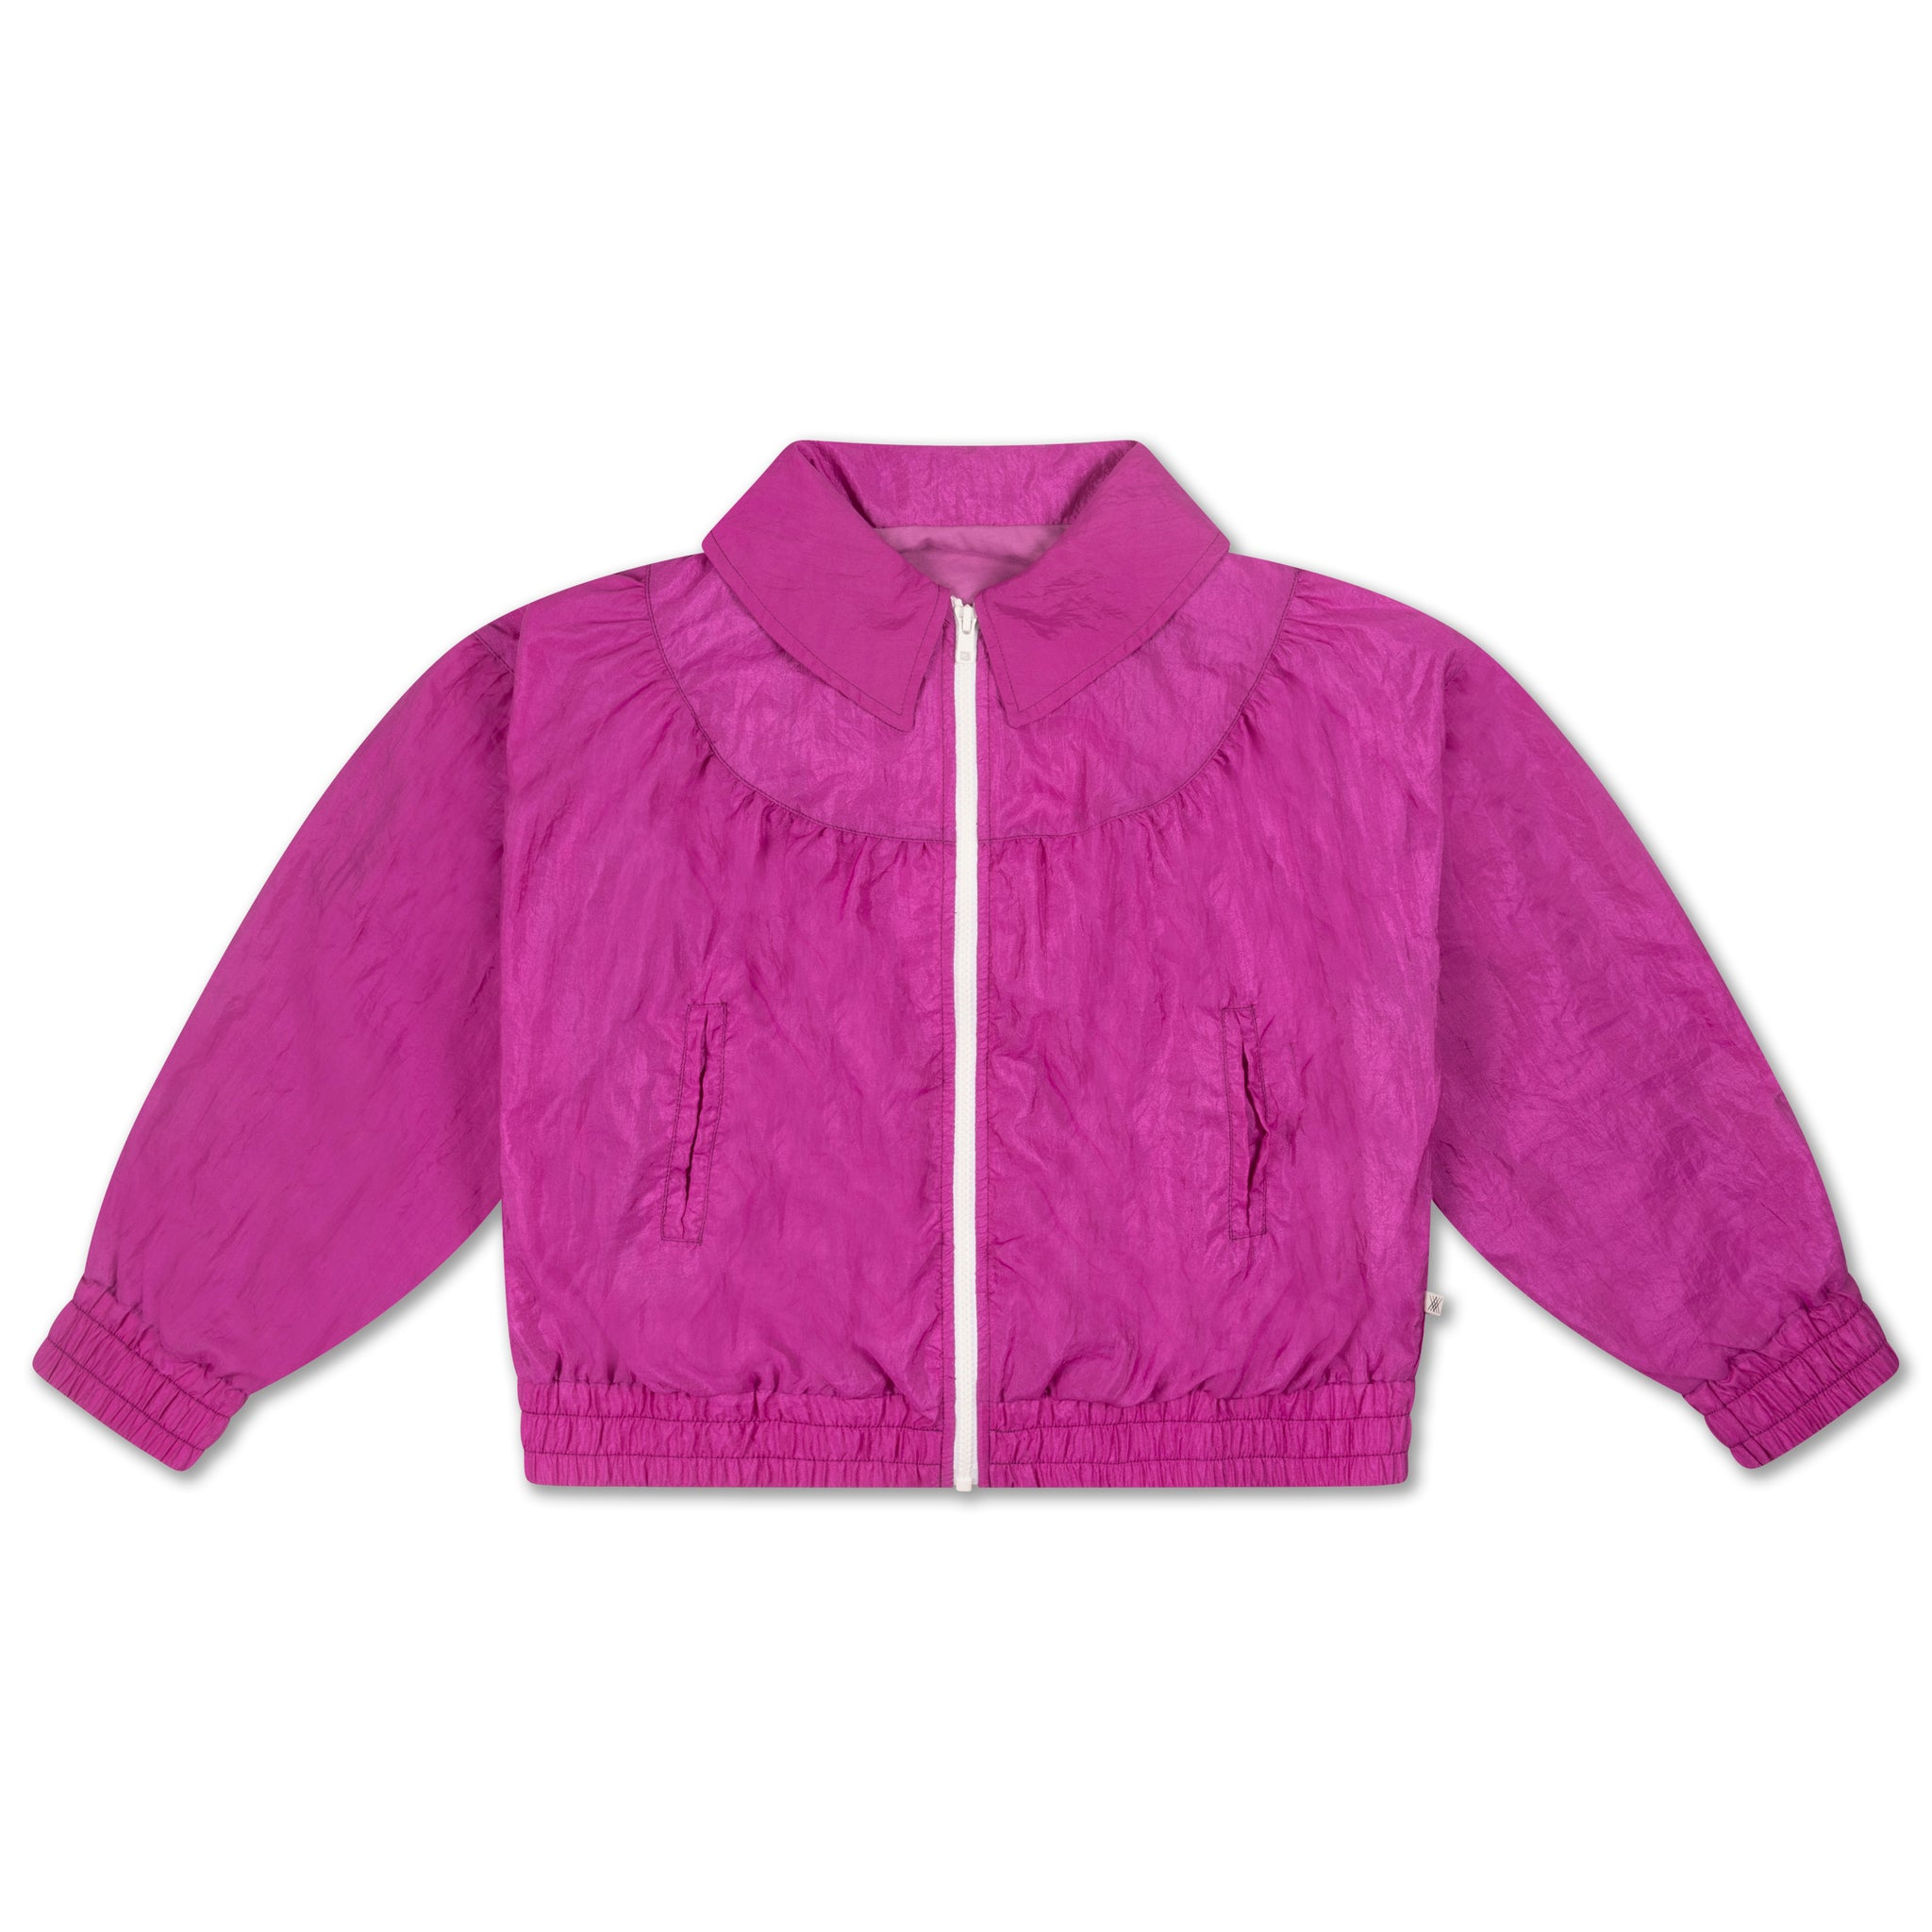 Repose AMS Sporty Jacket Fuchsia Pink